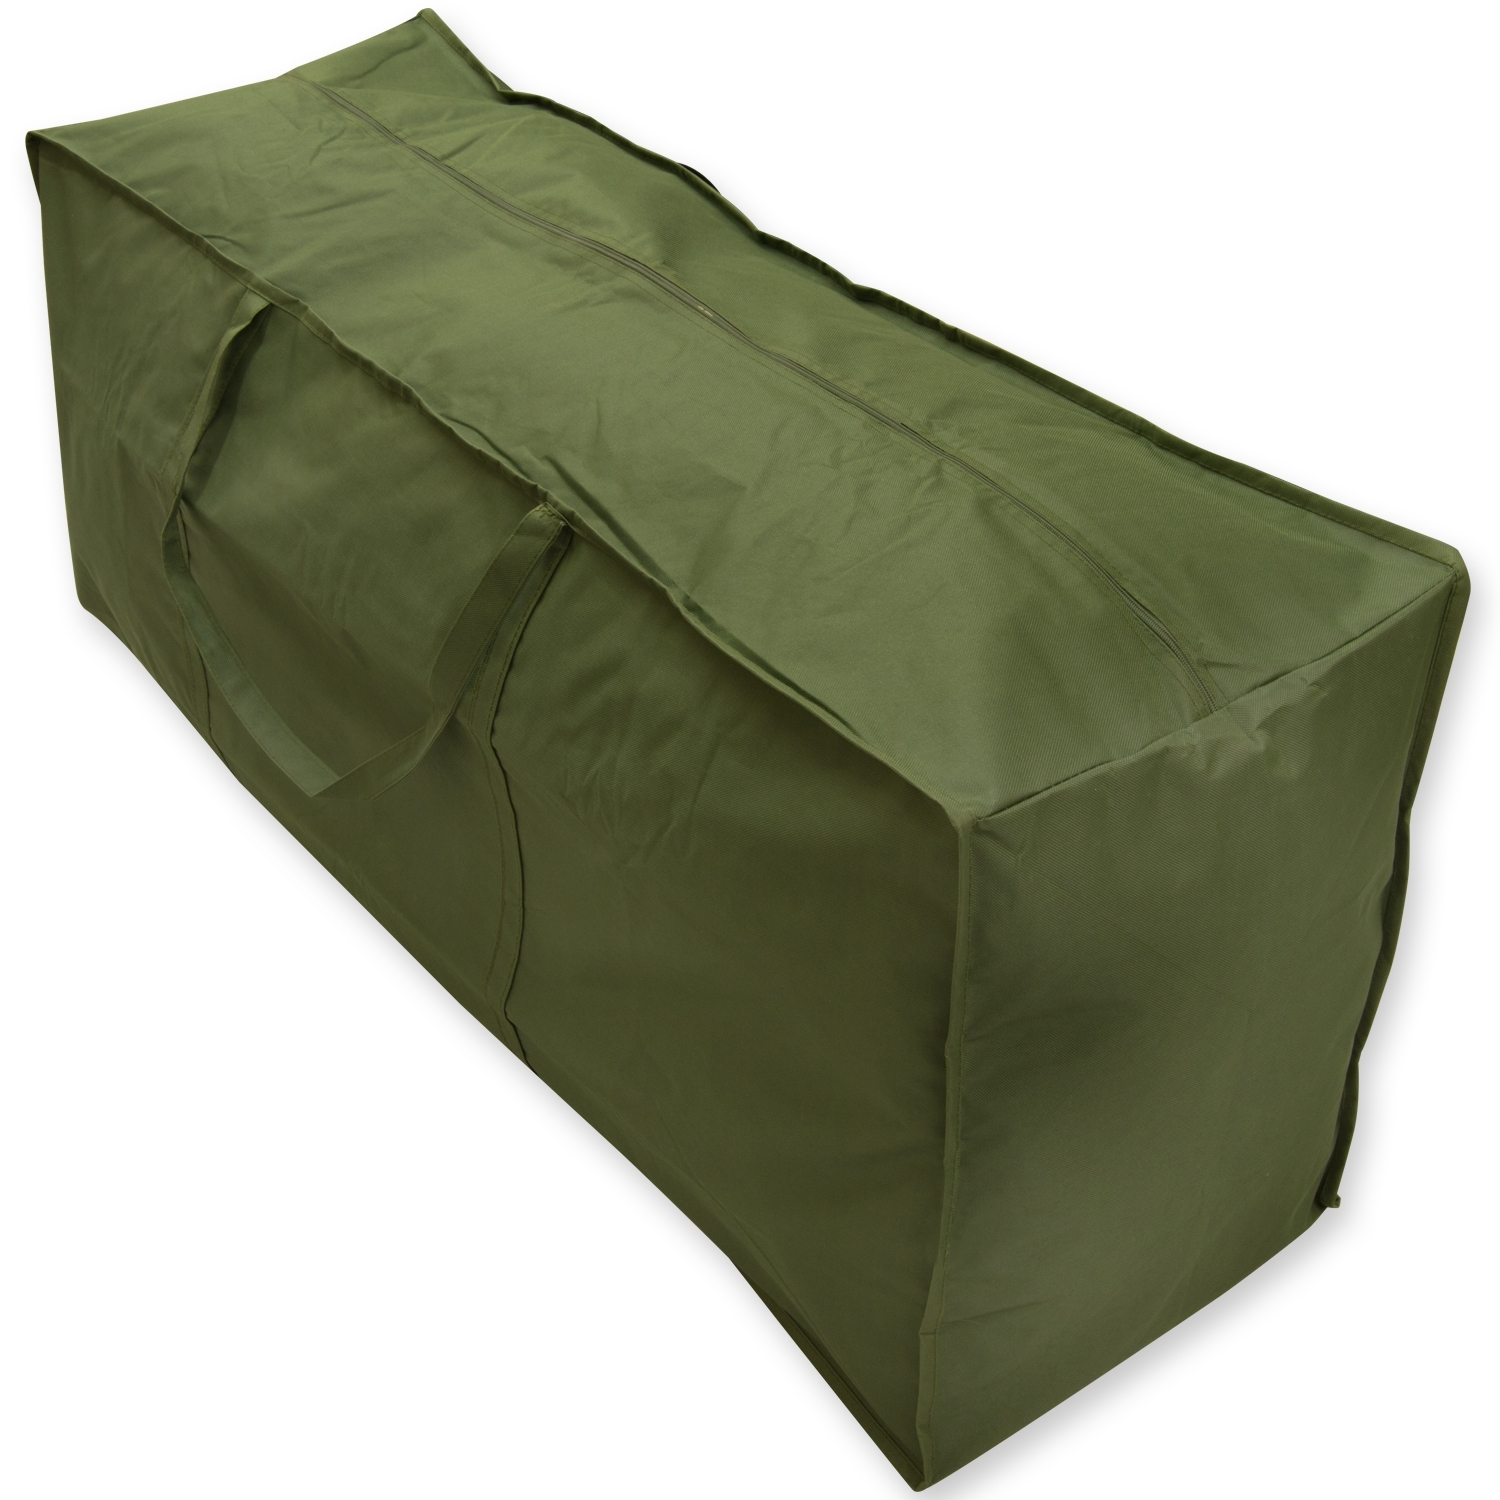 Oxbridge Furniture Cushion Storage Bag Furniture Outdoor Value Intended For Outdoor Cushion Storage Bags To Save At Outdoor Cushion Storage Bags